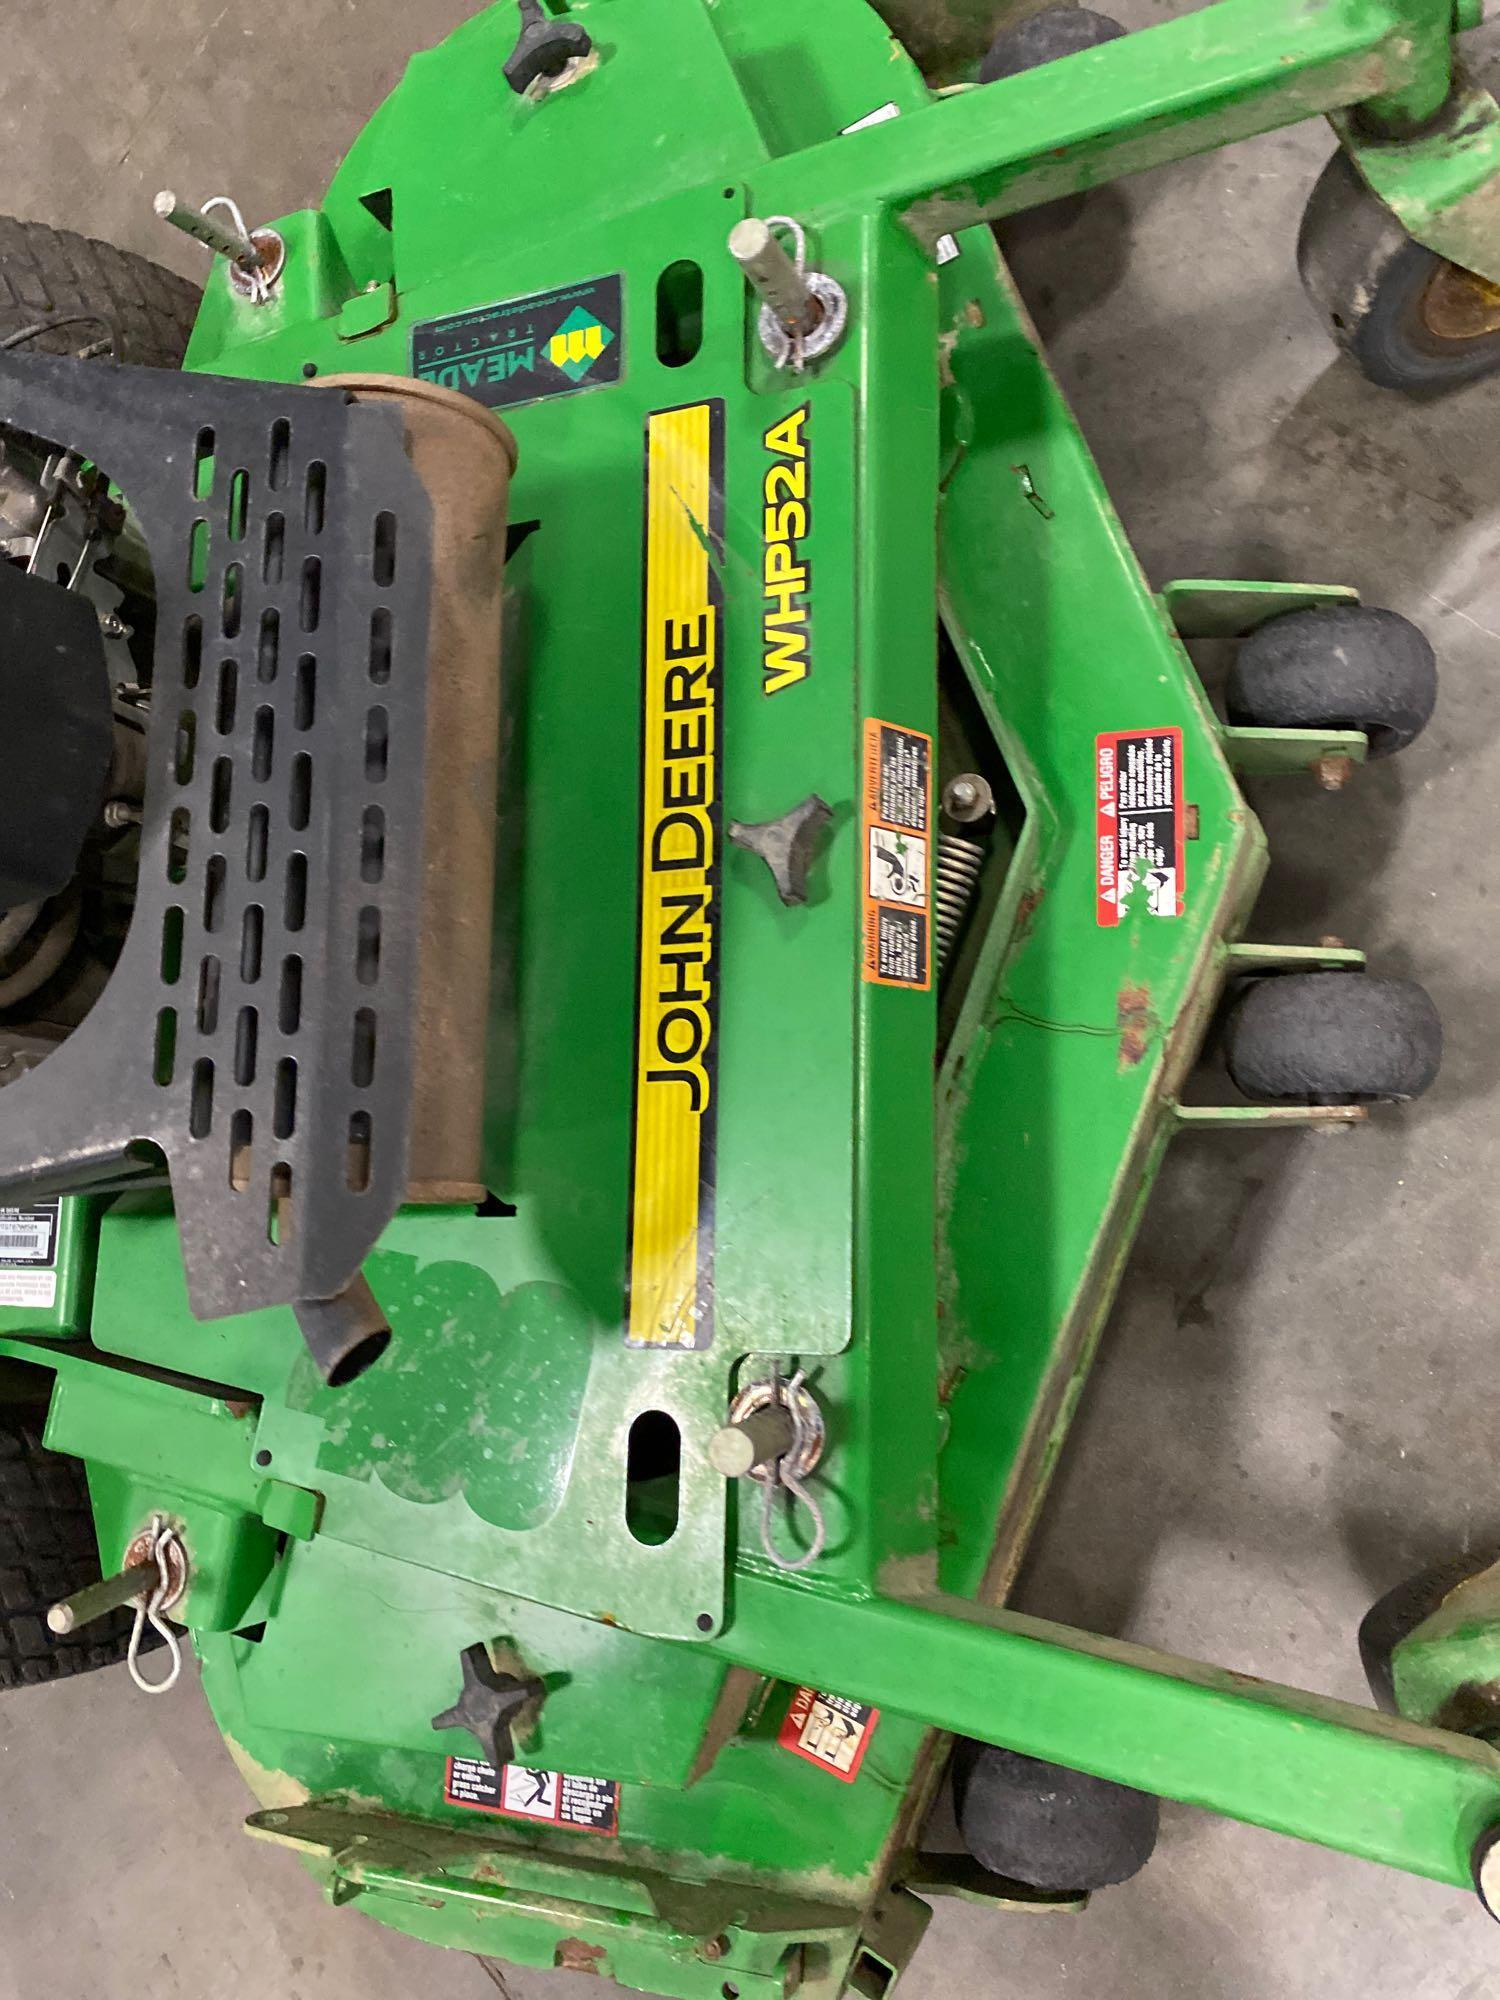 """JOHN DEERE WHP52A MOWER, 52"""" DECK, RUNS AND OPERATES - Image 6 of 7"""